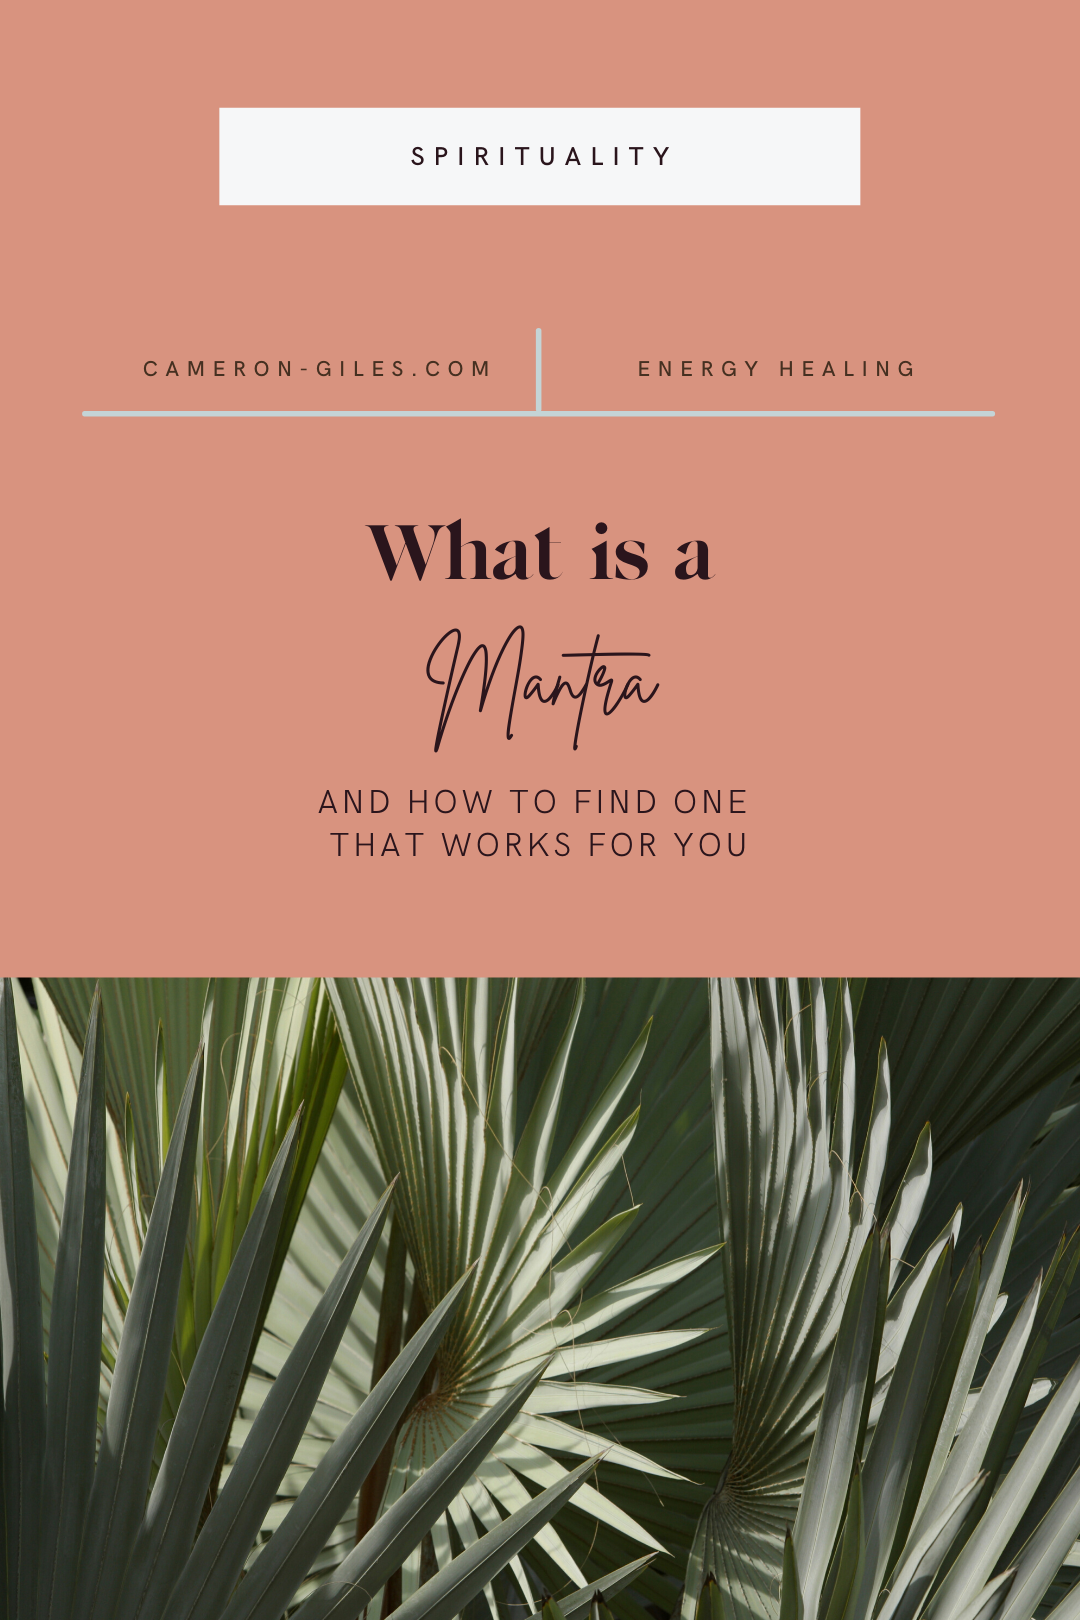 What is a mantra and how to find one that works for you